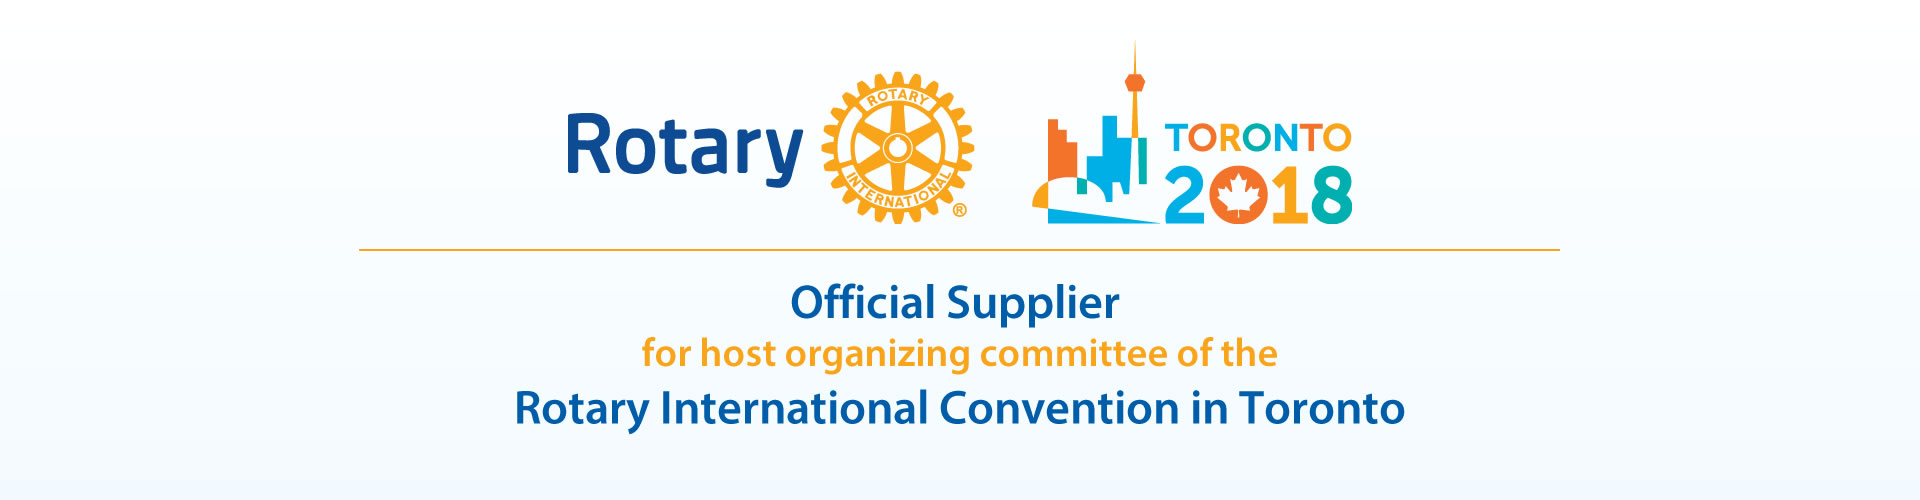 Rotary Toronto 2018 Convention Official Supplier